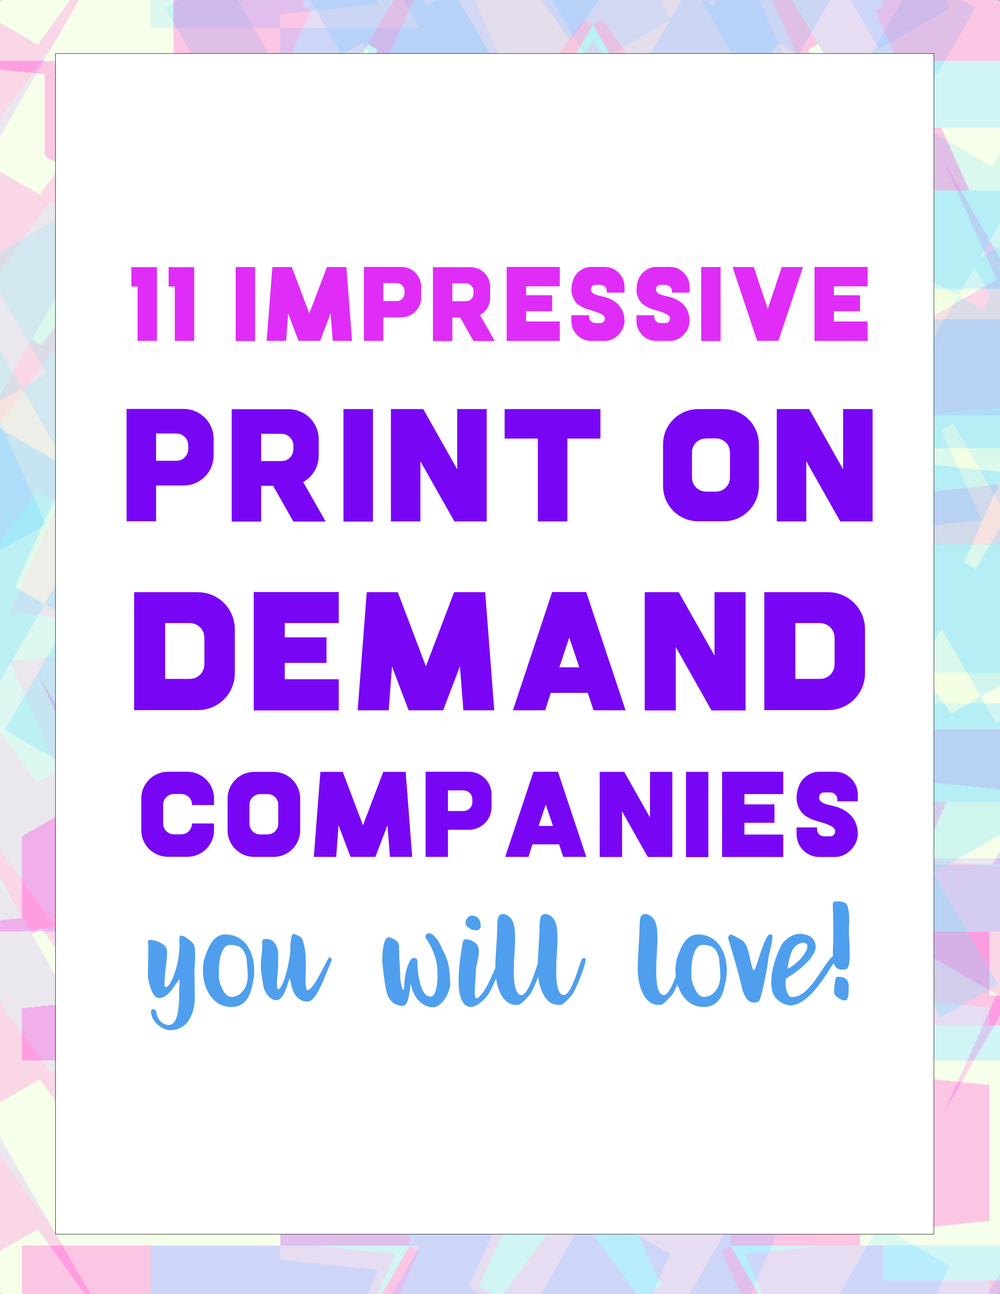 11 Print On Demand Companies You Will Love!